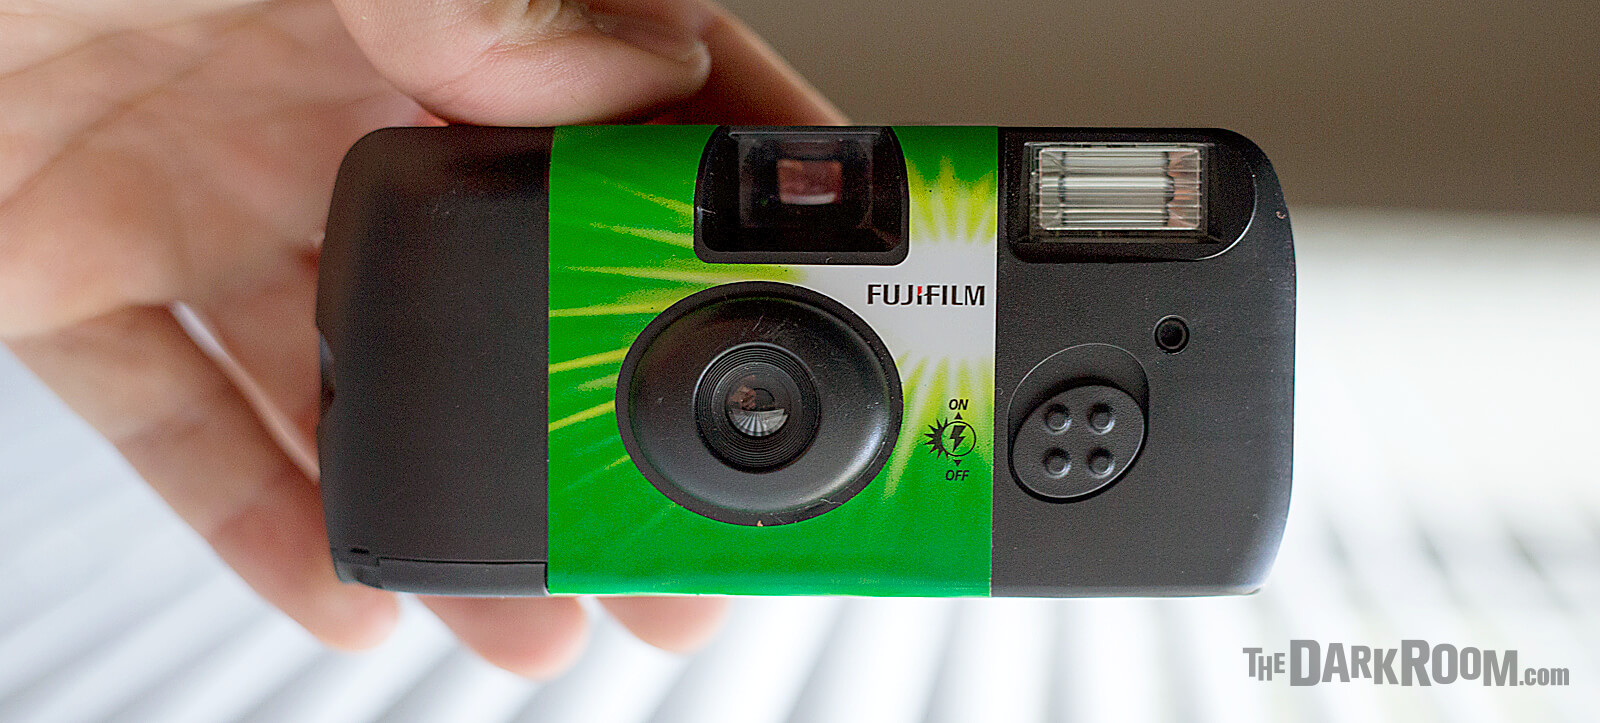 Fujifilm QuickSnap Disposable Camera